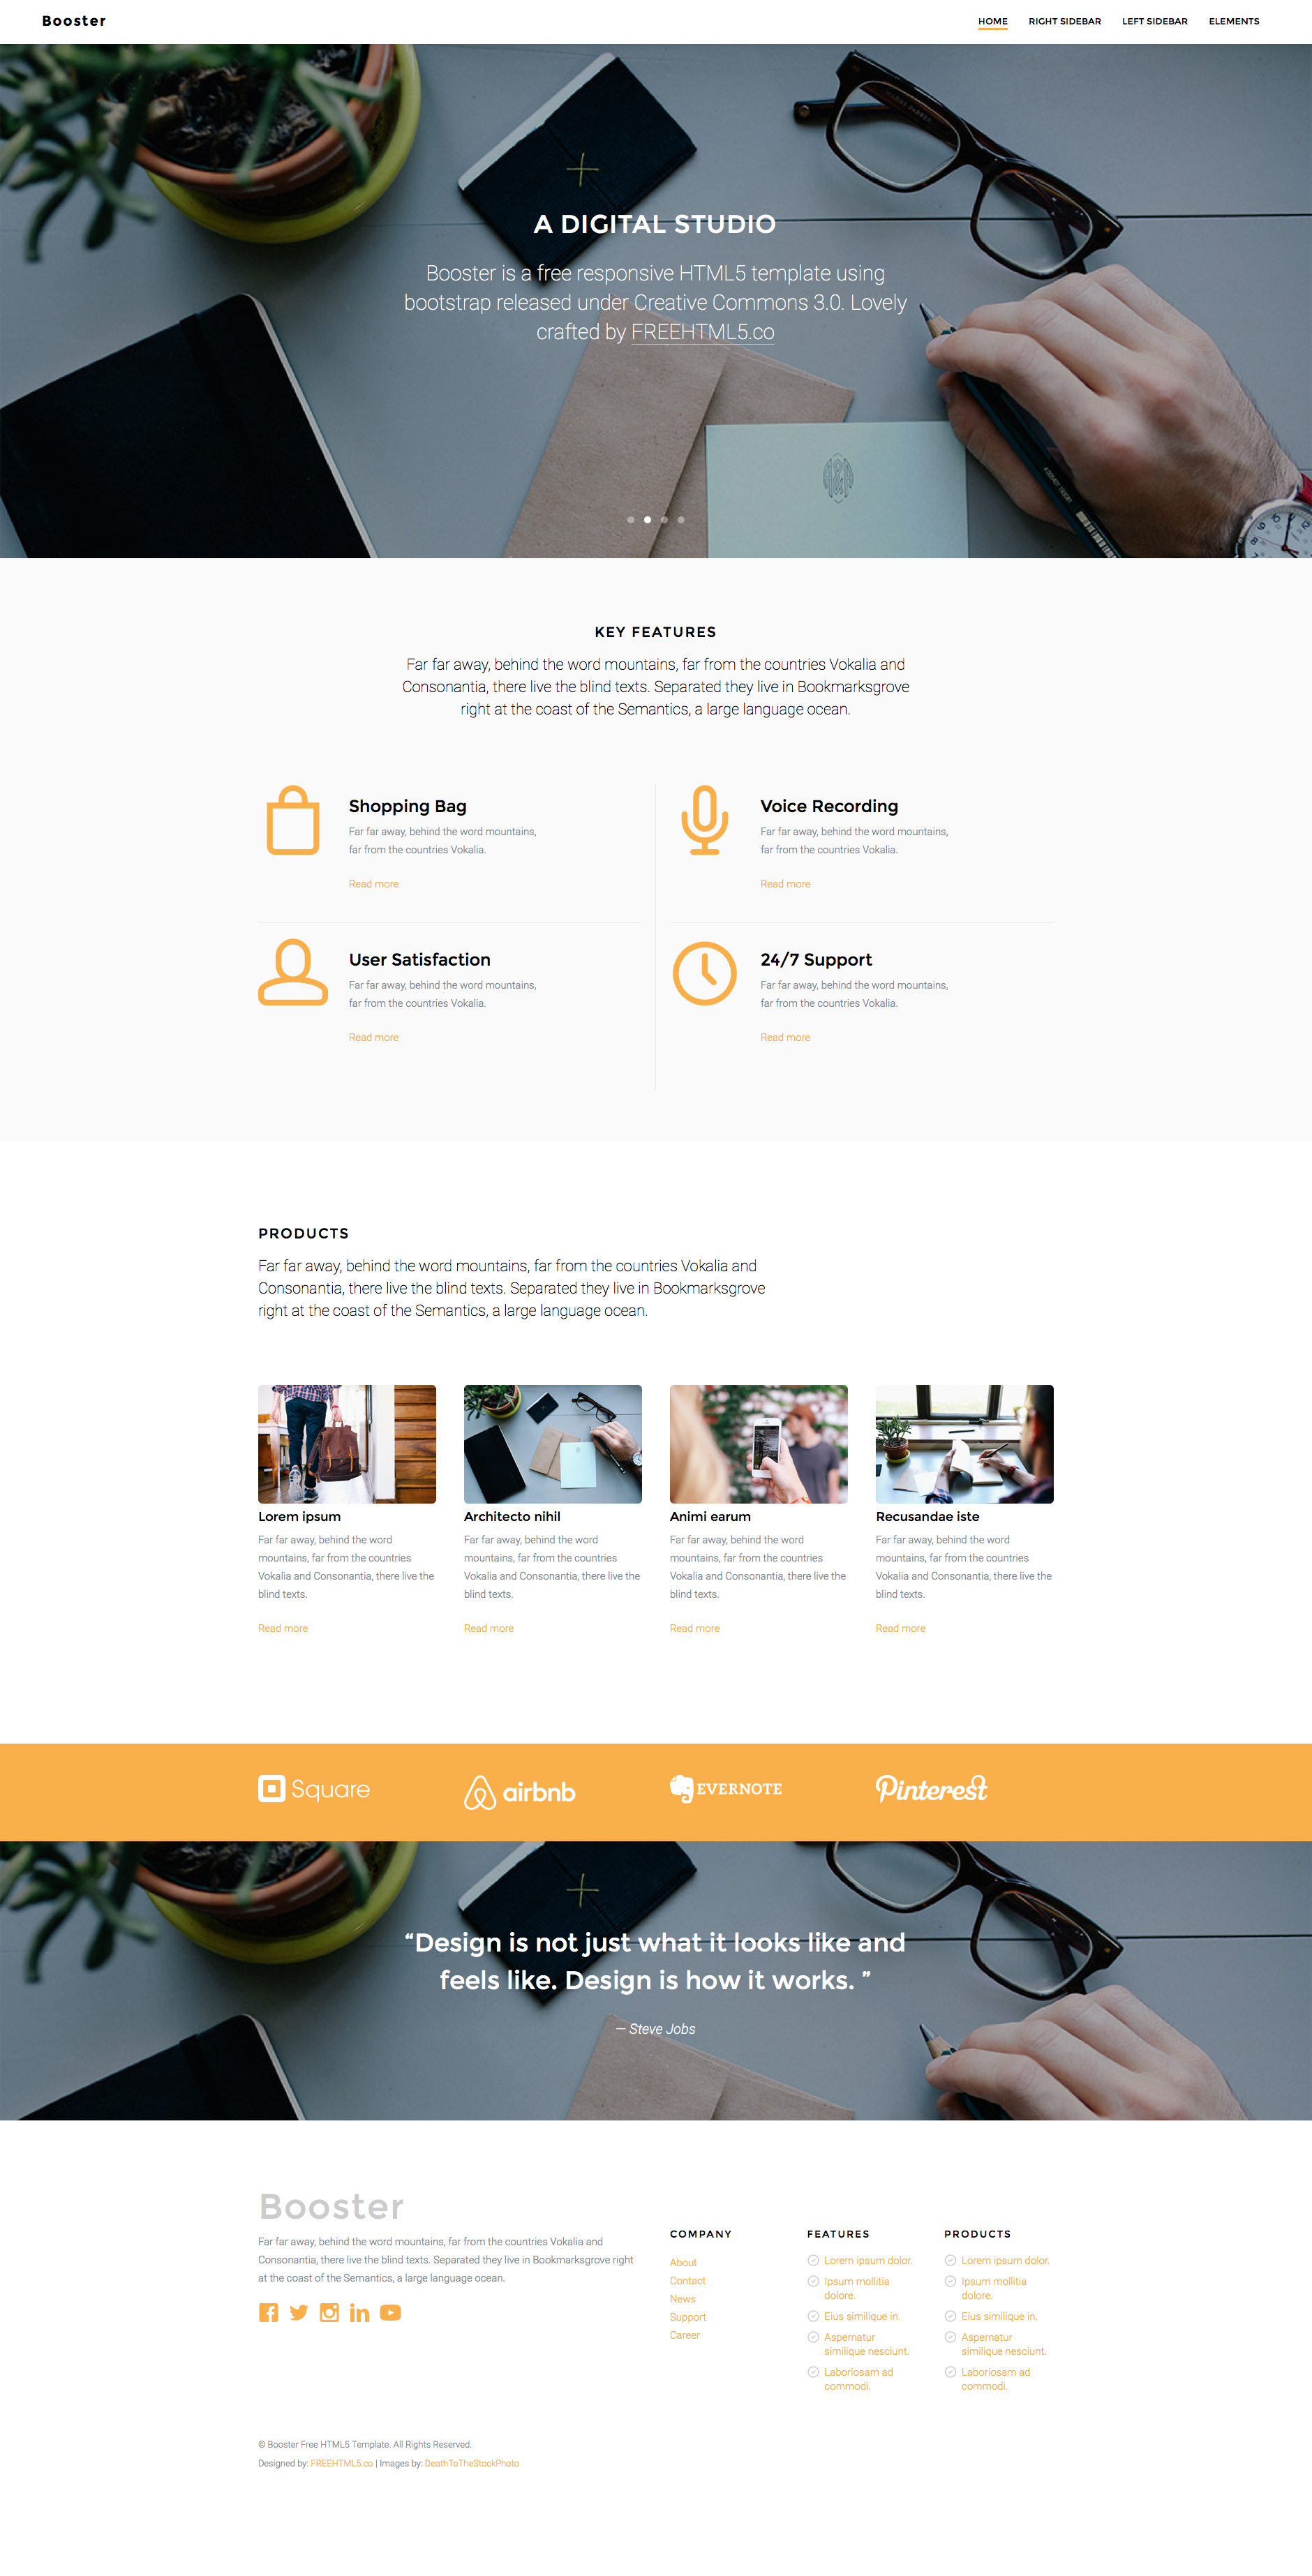 Booster free responsive html5 bootstrap business template booster is an elegant free responsive html5 bootstrap business template that is suitable for landing pages cheaphphosting Gallery